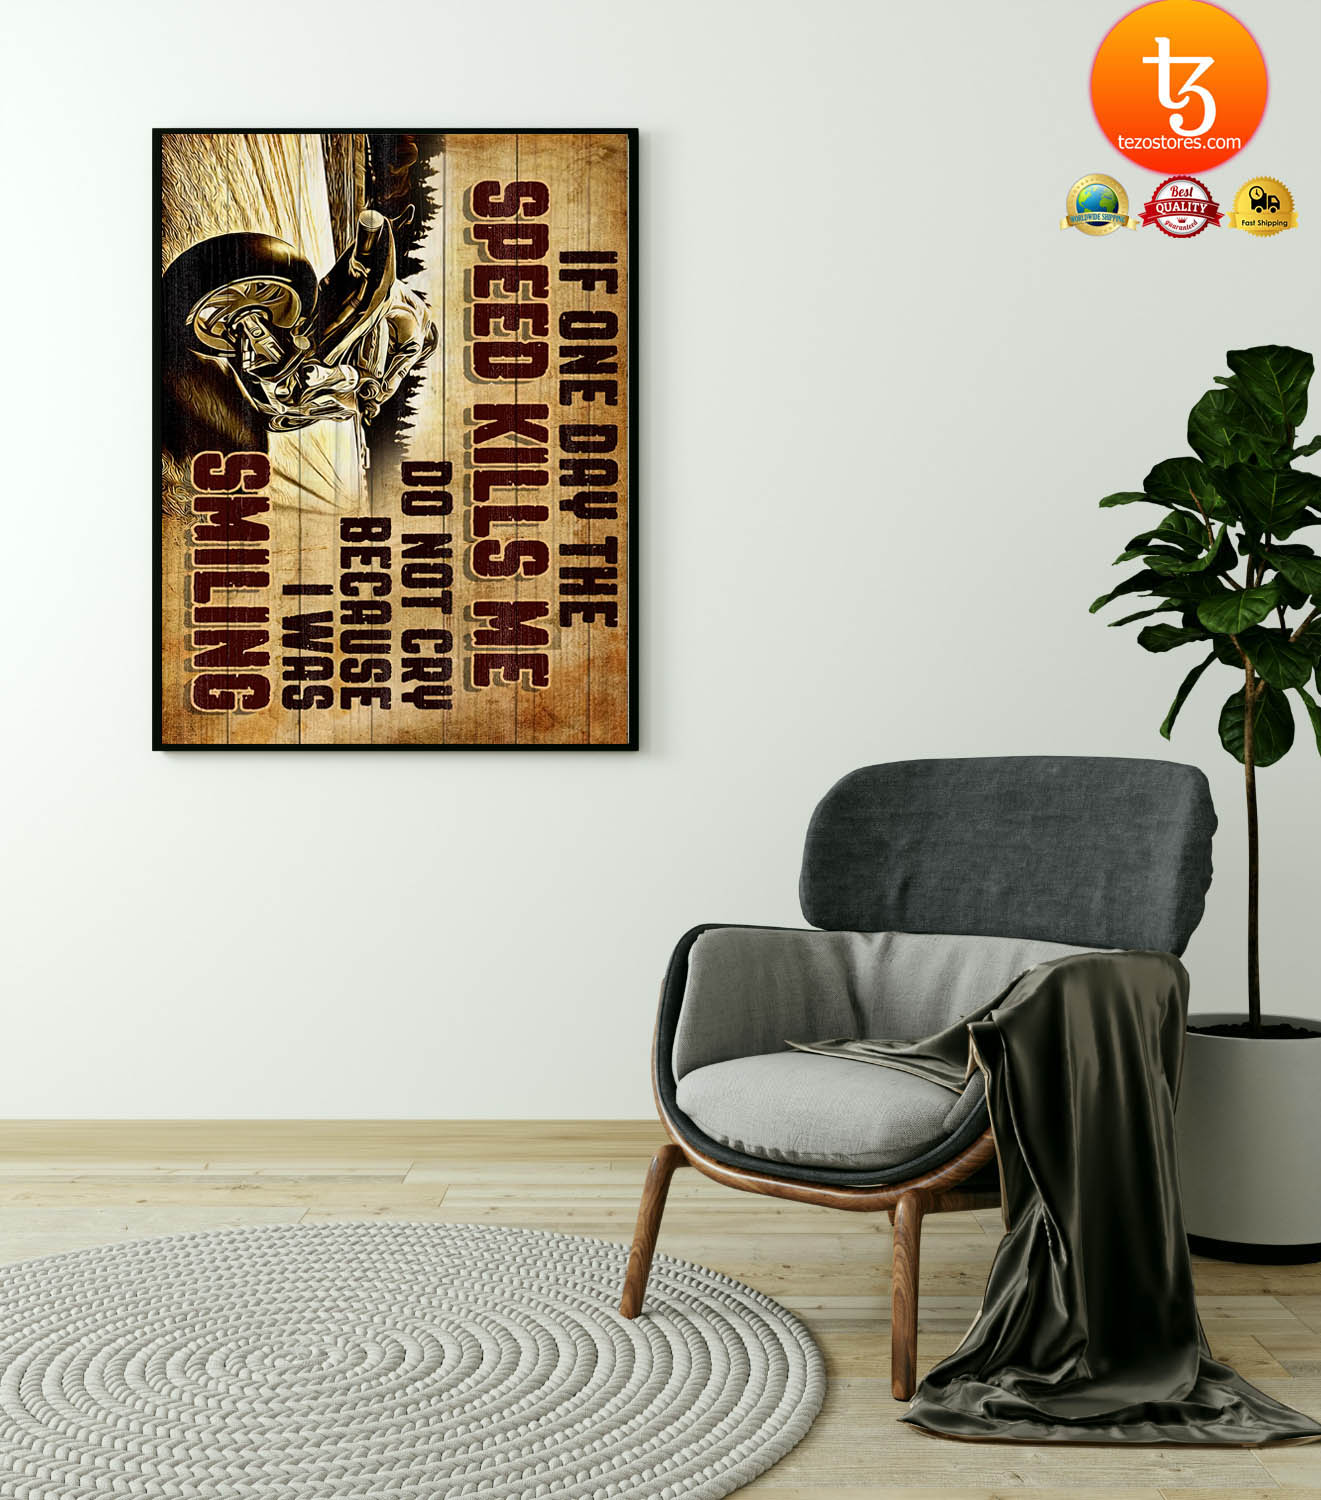 Superbike if one day the speed kills me do not cry because i was smiling poster 23